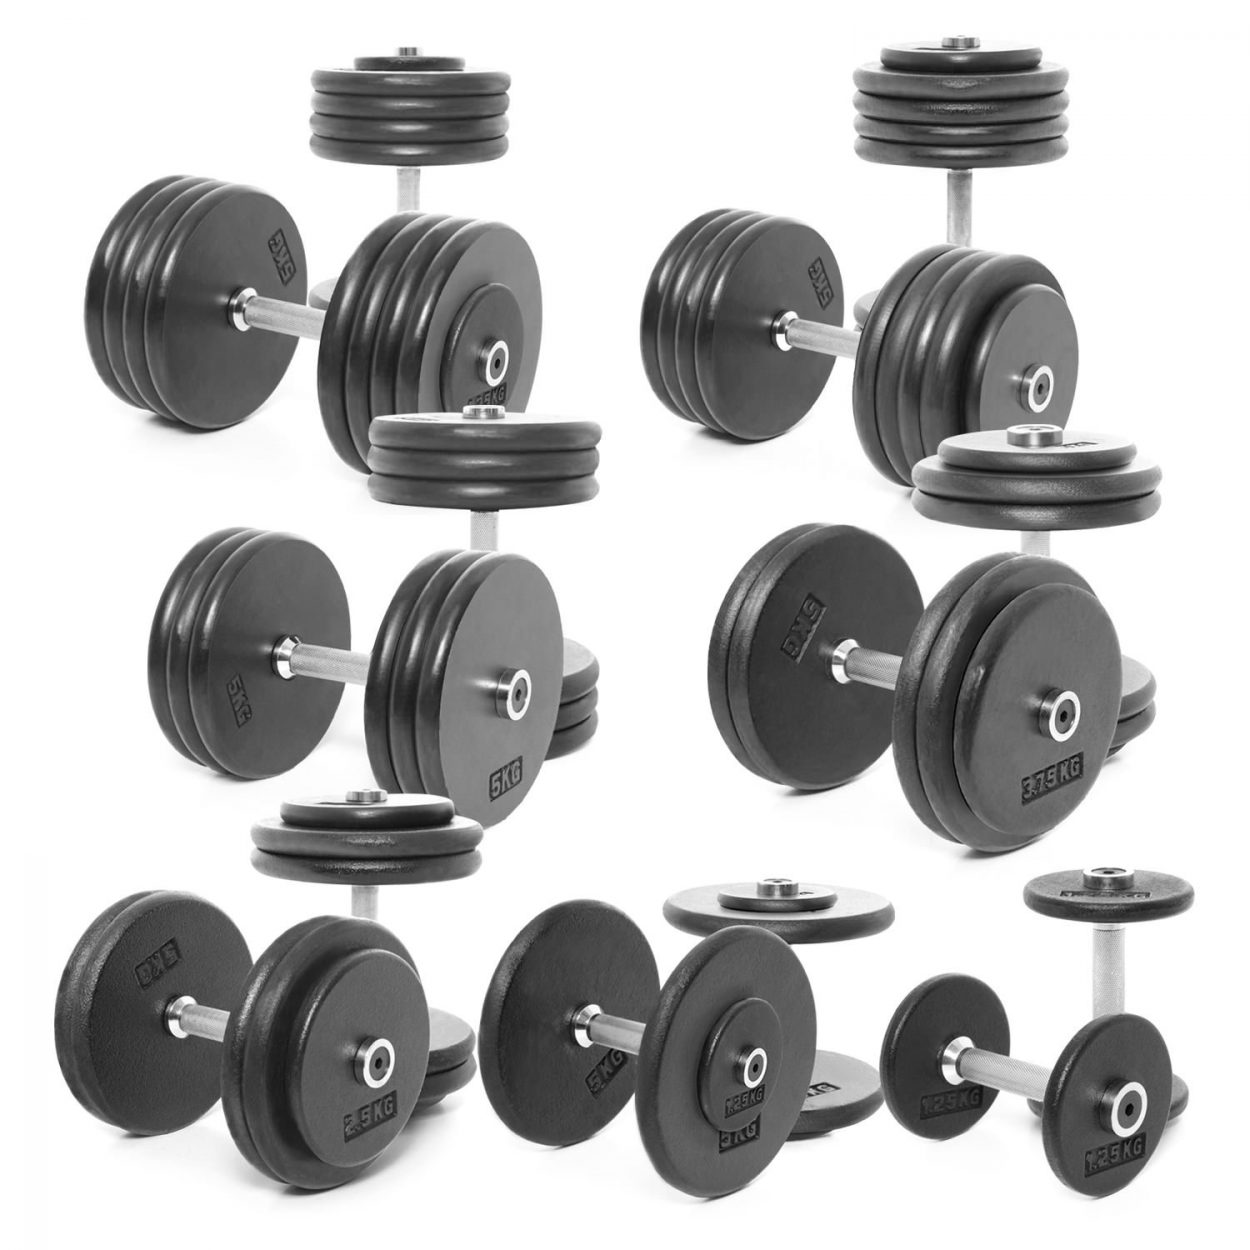 Body Power Pro-style Dumbbells Weight Set D: 2.5-45kg (18 Pairs)